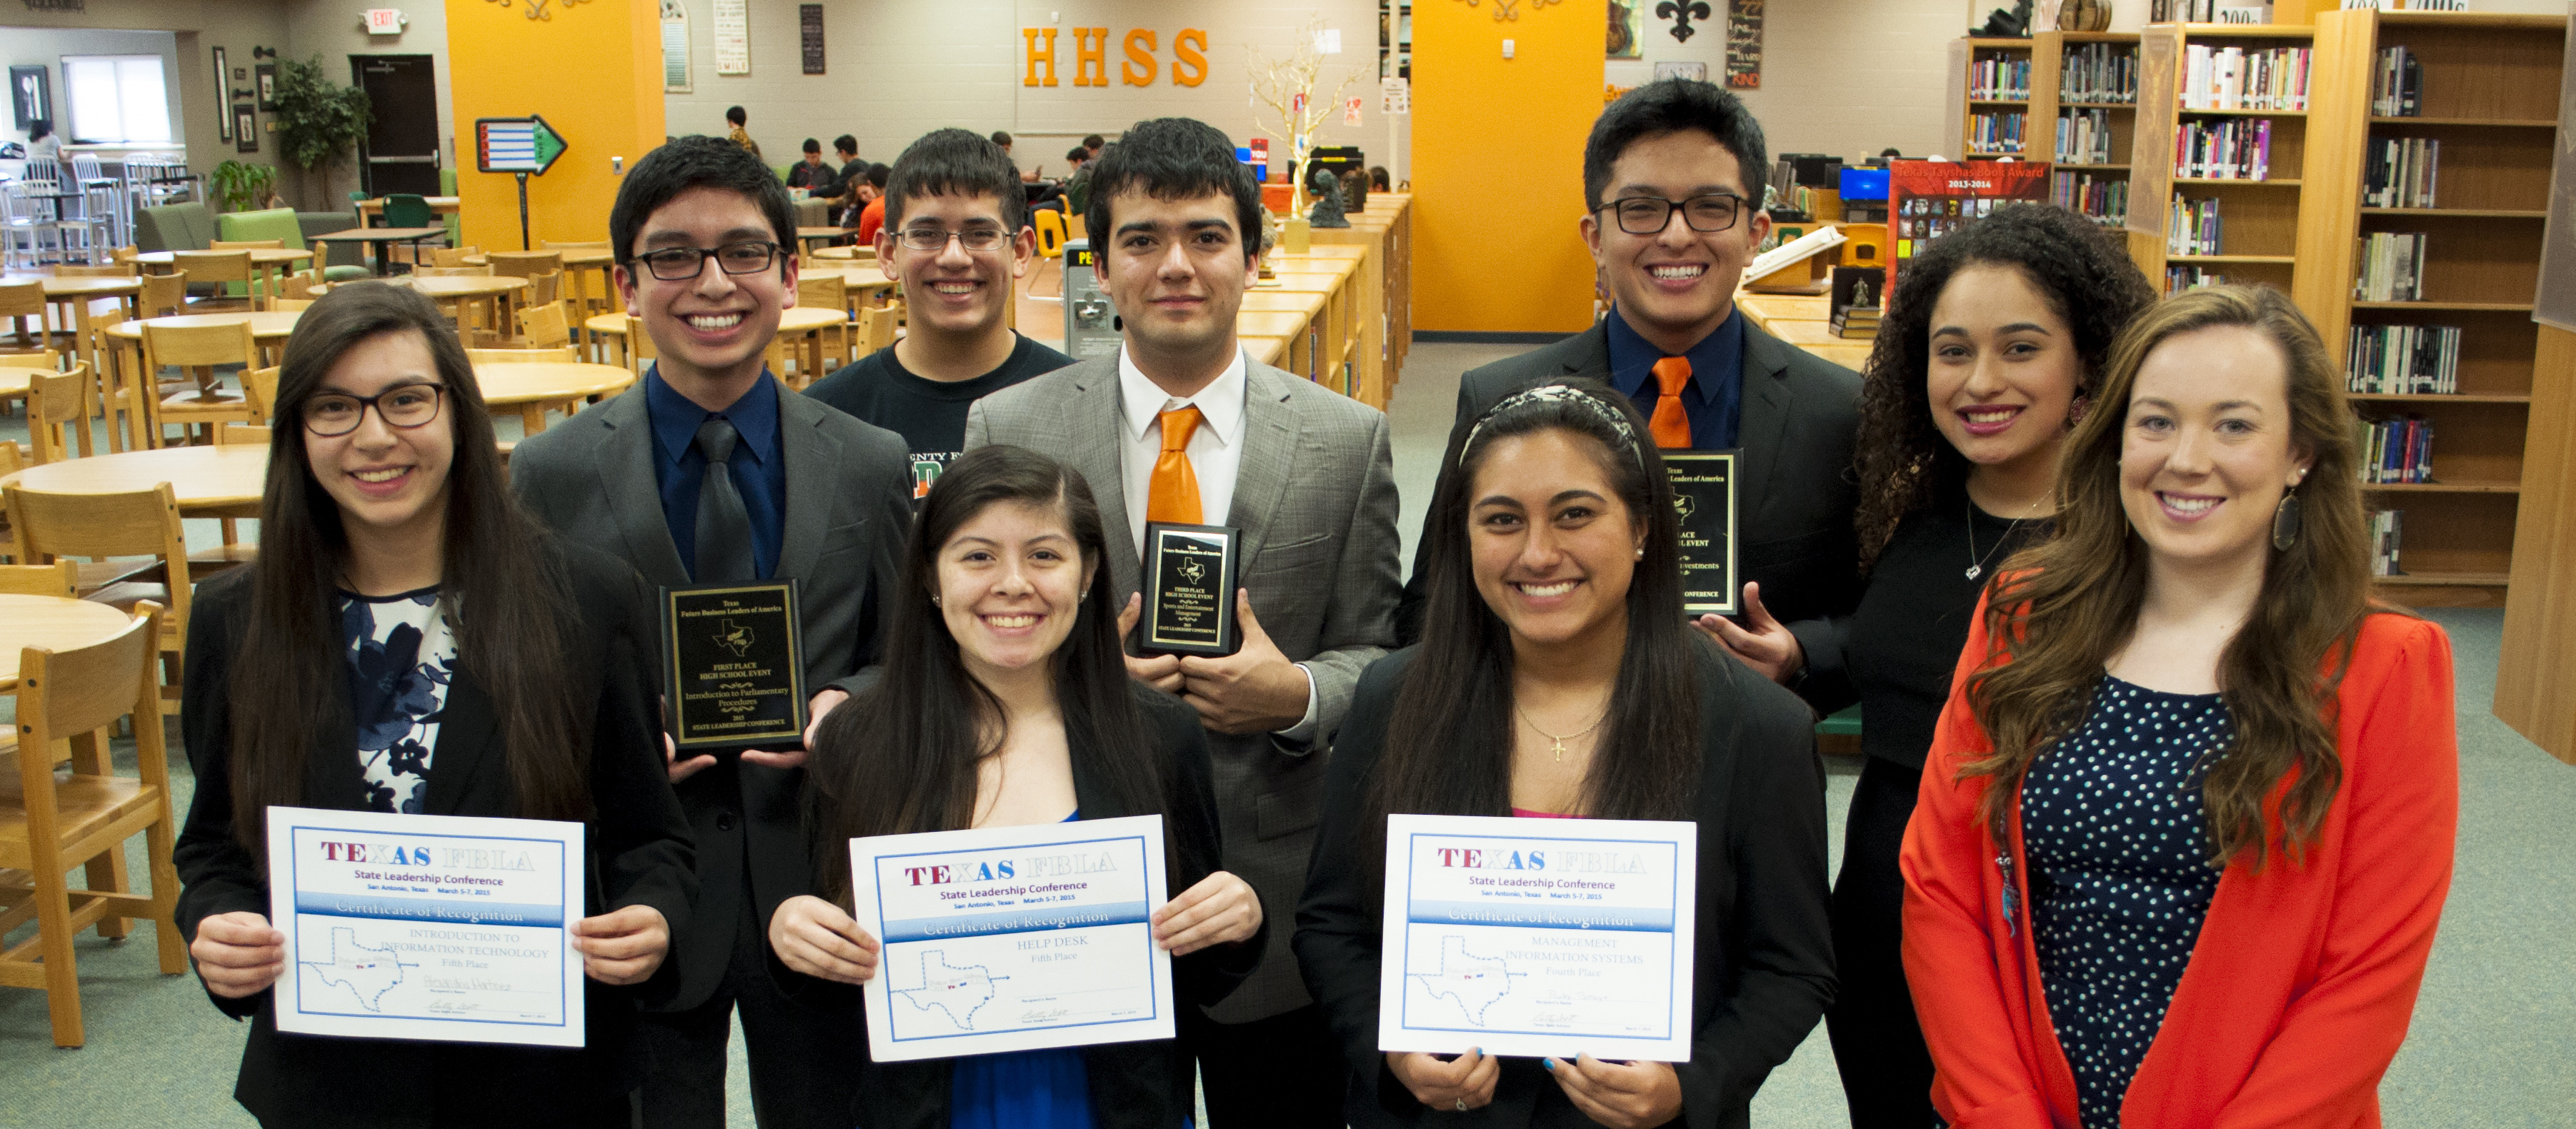 South's FBLA team soars at State Leadership Conference